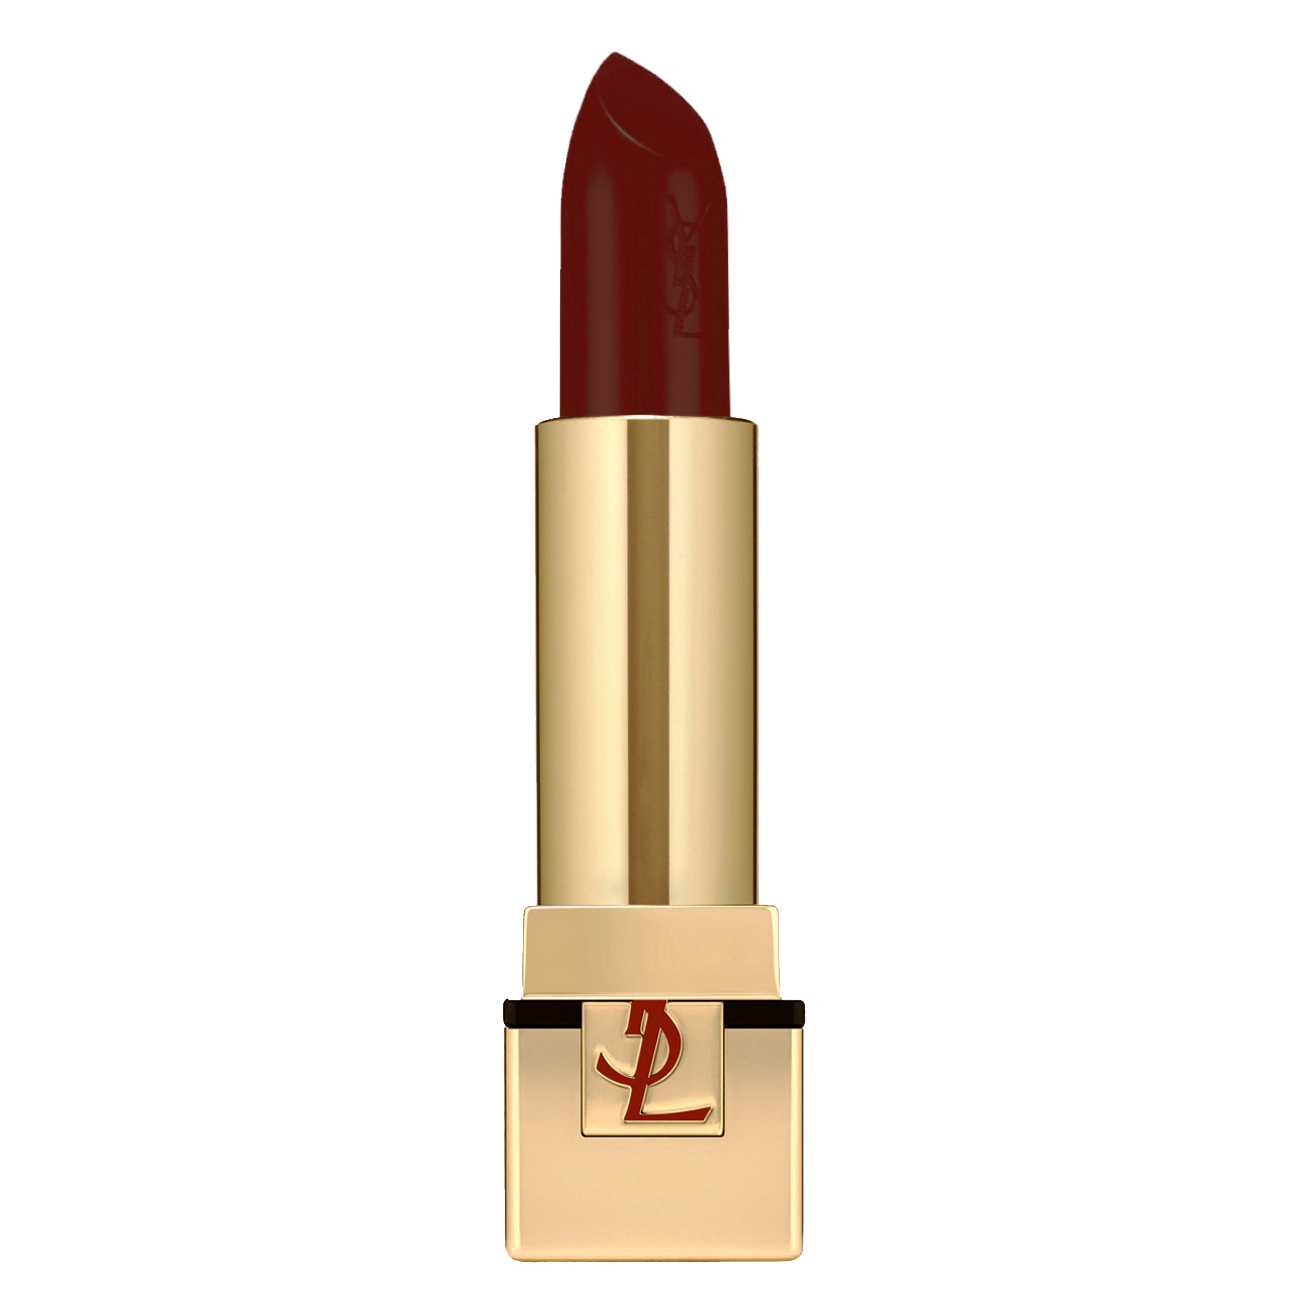 Rouge Pur Couture 3 G Rouge Feu 14 Yves Saint Laurent imagine 2021 bestvalue.eu